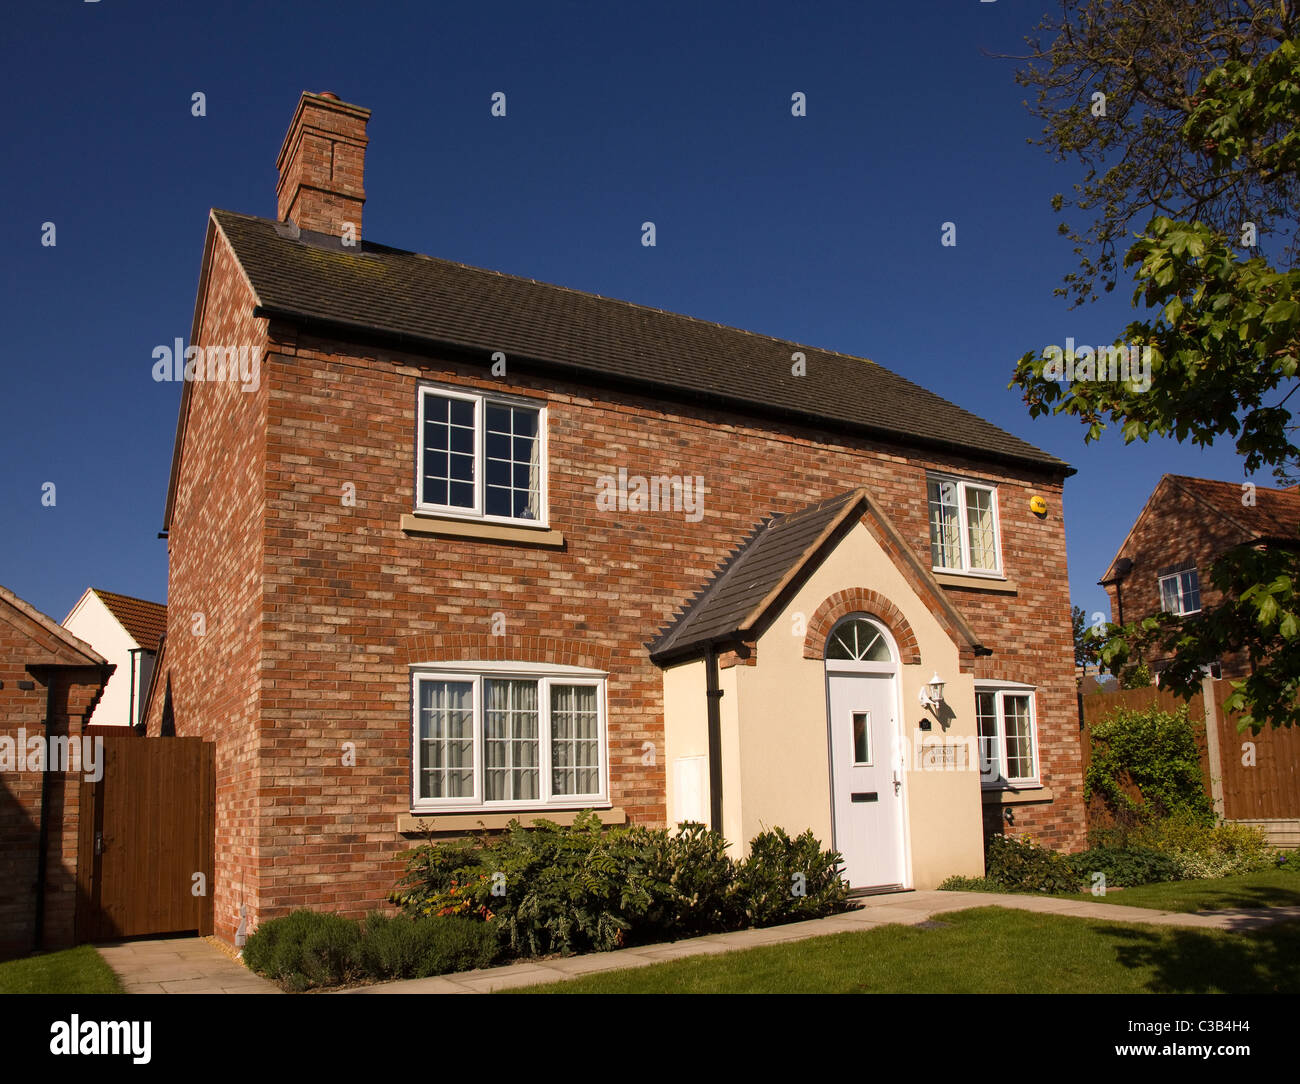 newbuild home in traditional english cottage style built